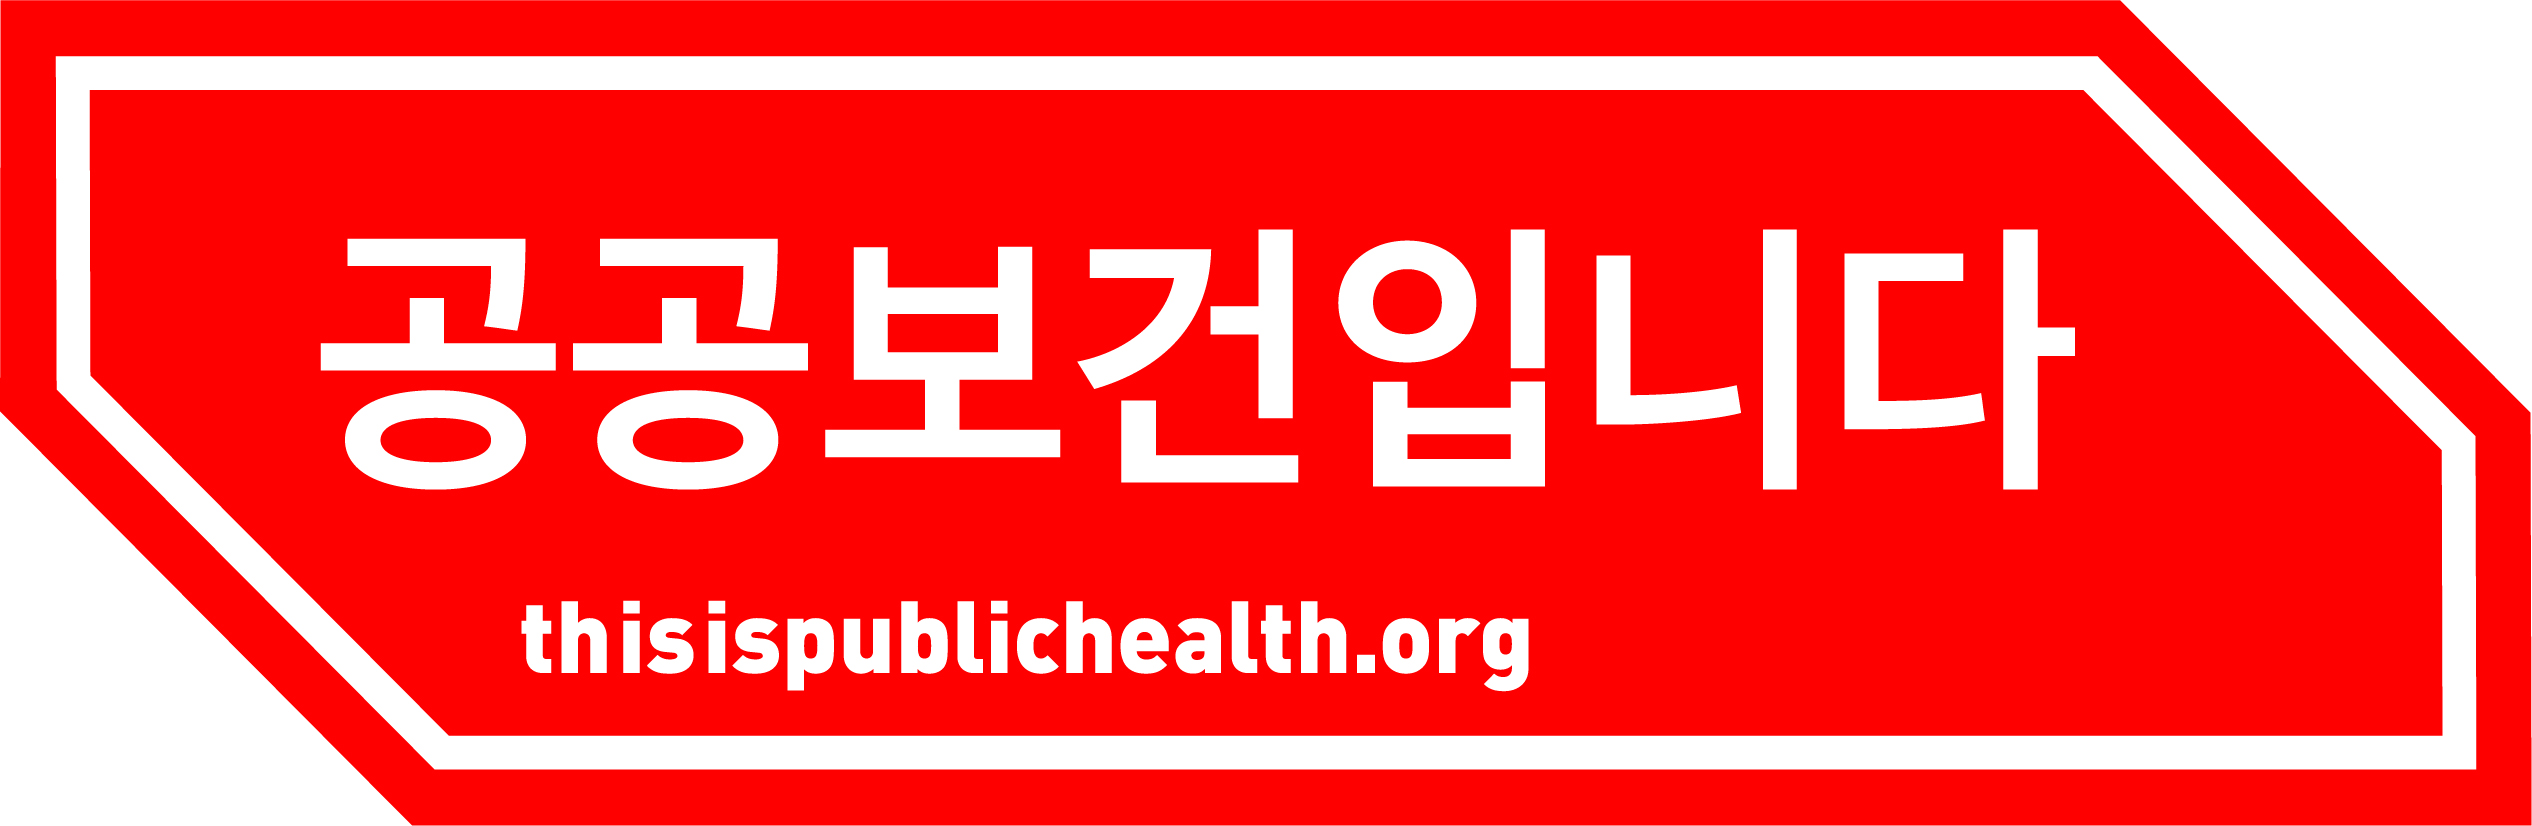 Resources | This Is Public Health